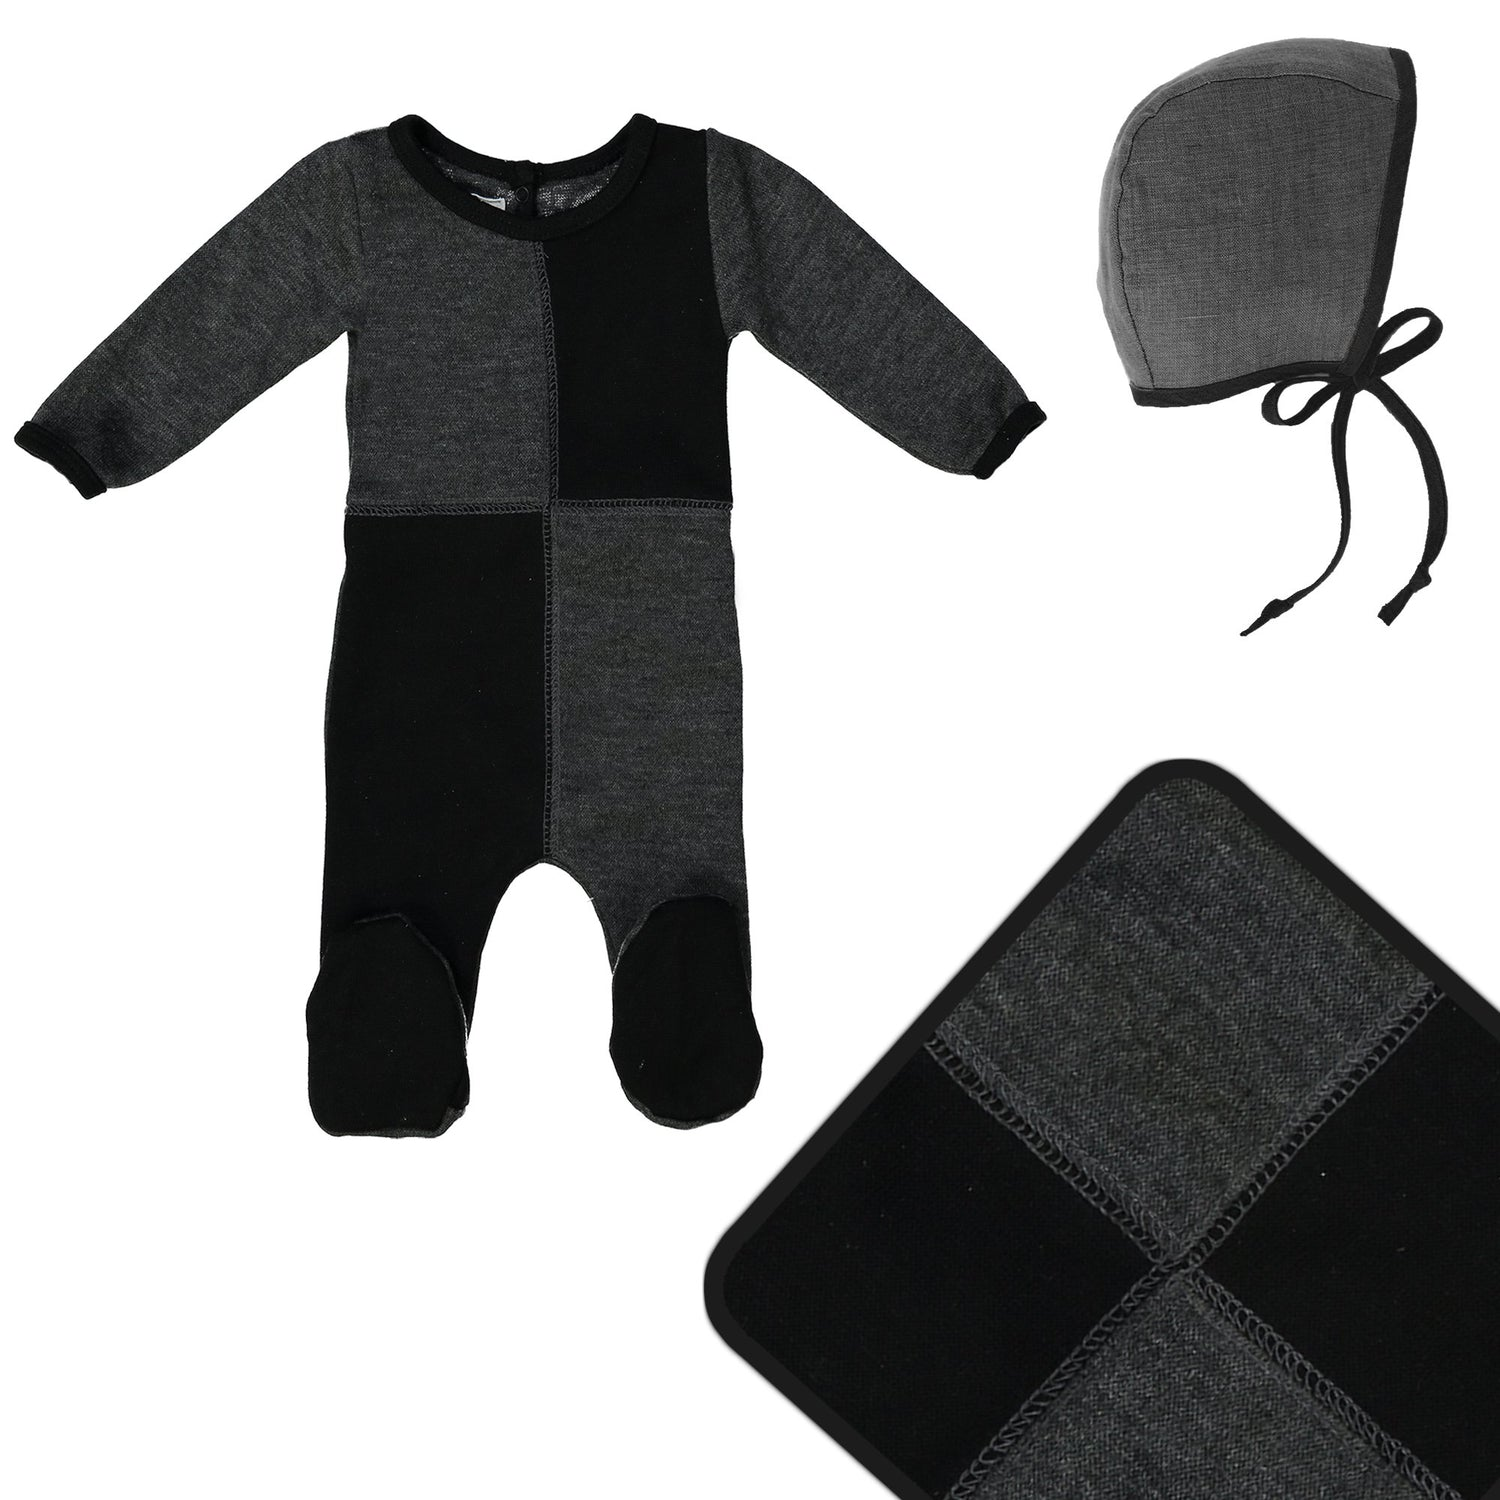 Sweater Block Cashmere Set Maniere Accessories 3 Months Charcoal